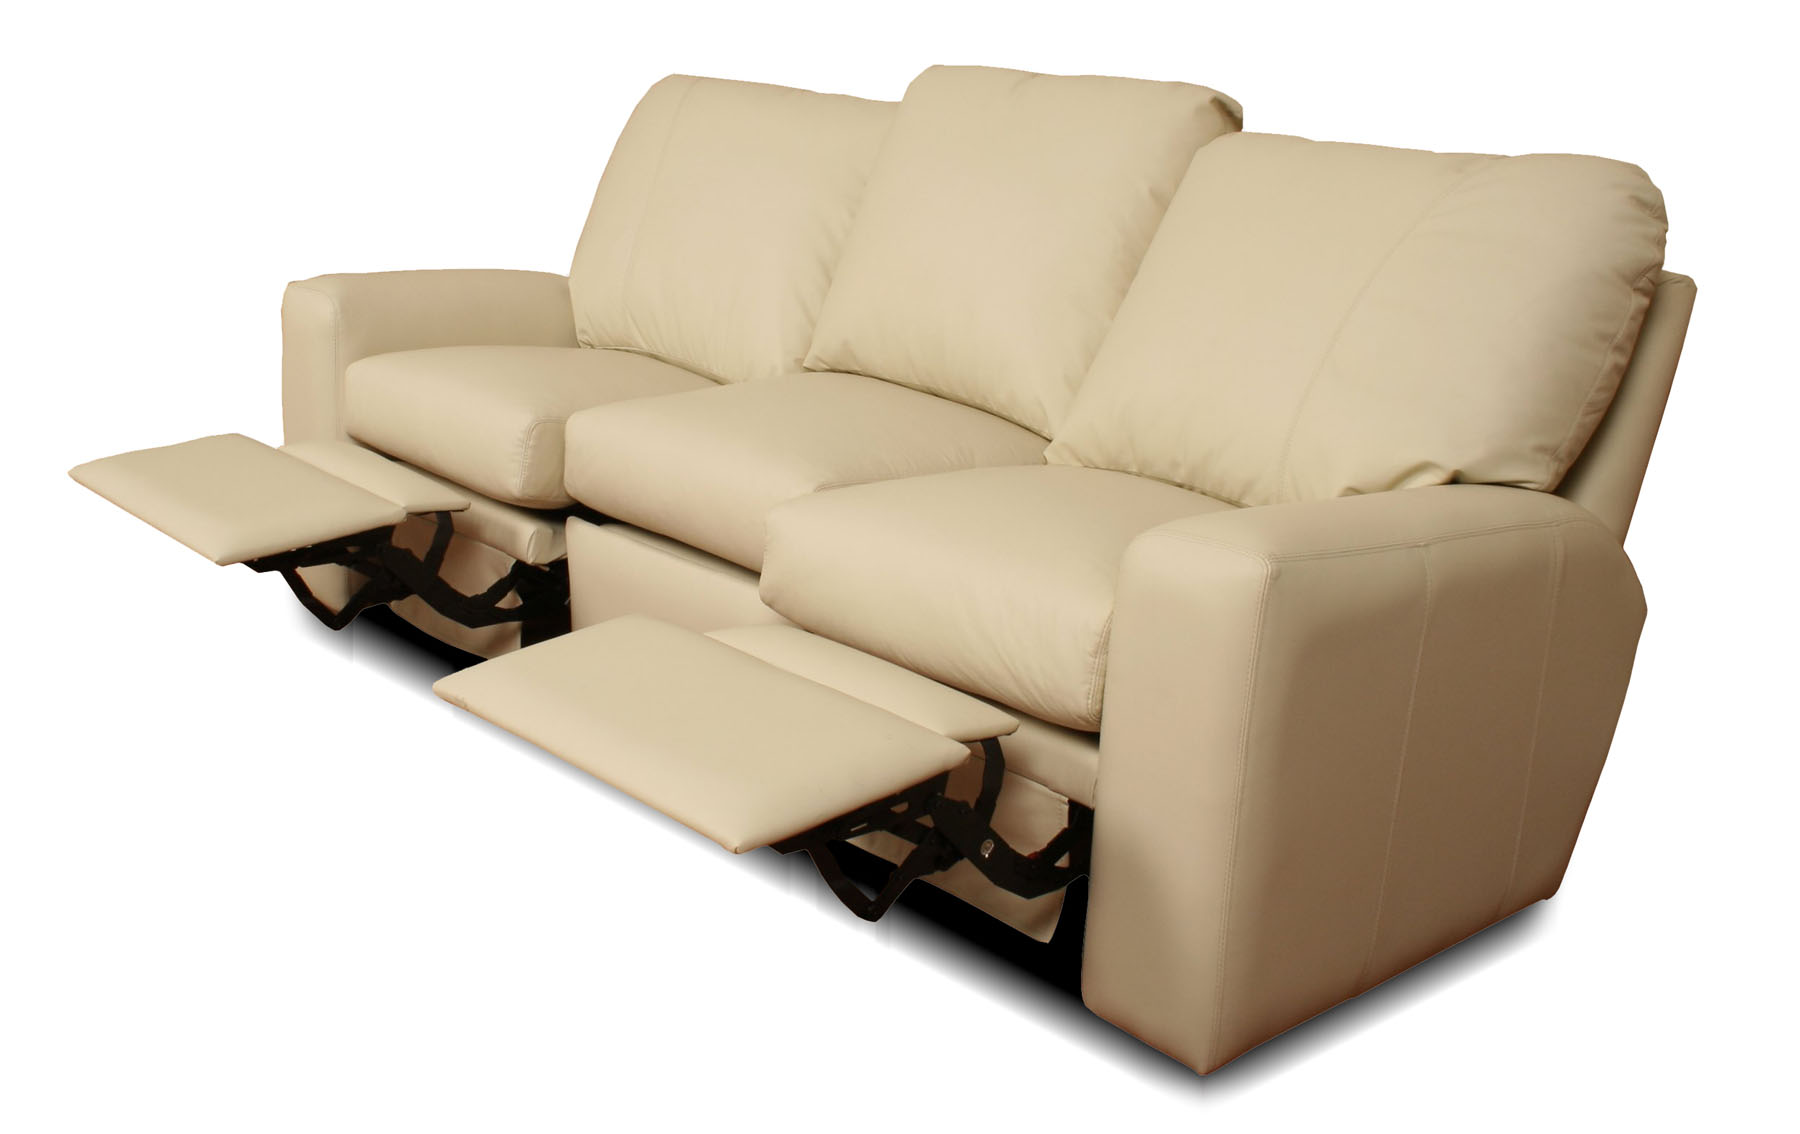 Benz - Reclining Leather Sofa | Leather Creations Furniture - Custom ...